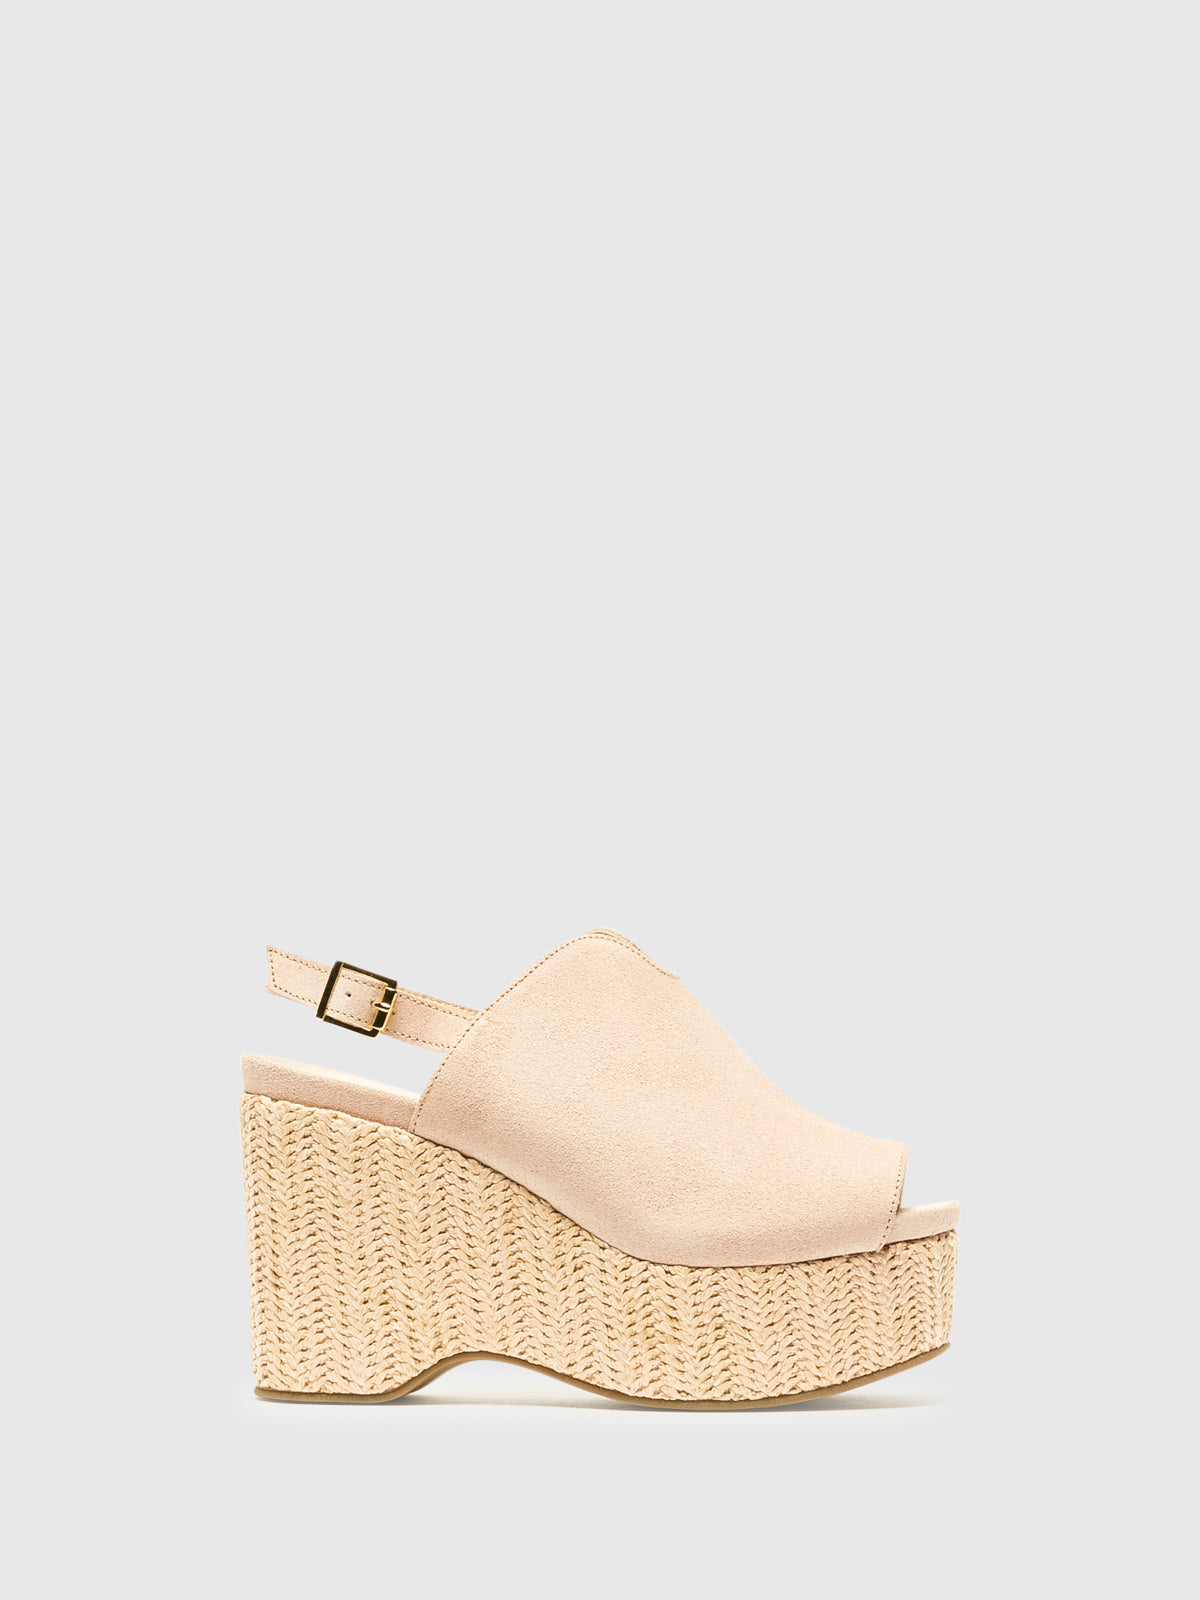 Foreva Pink Wedge Mules